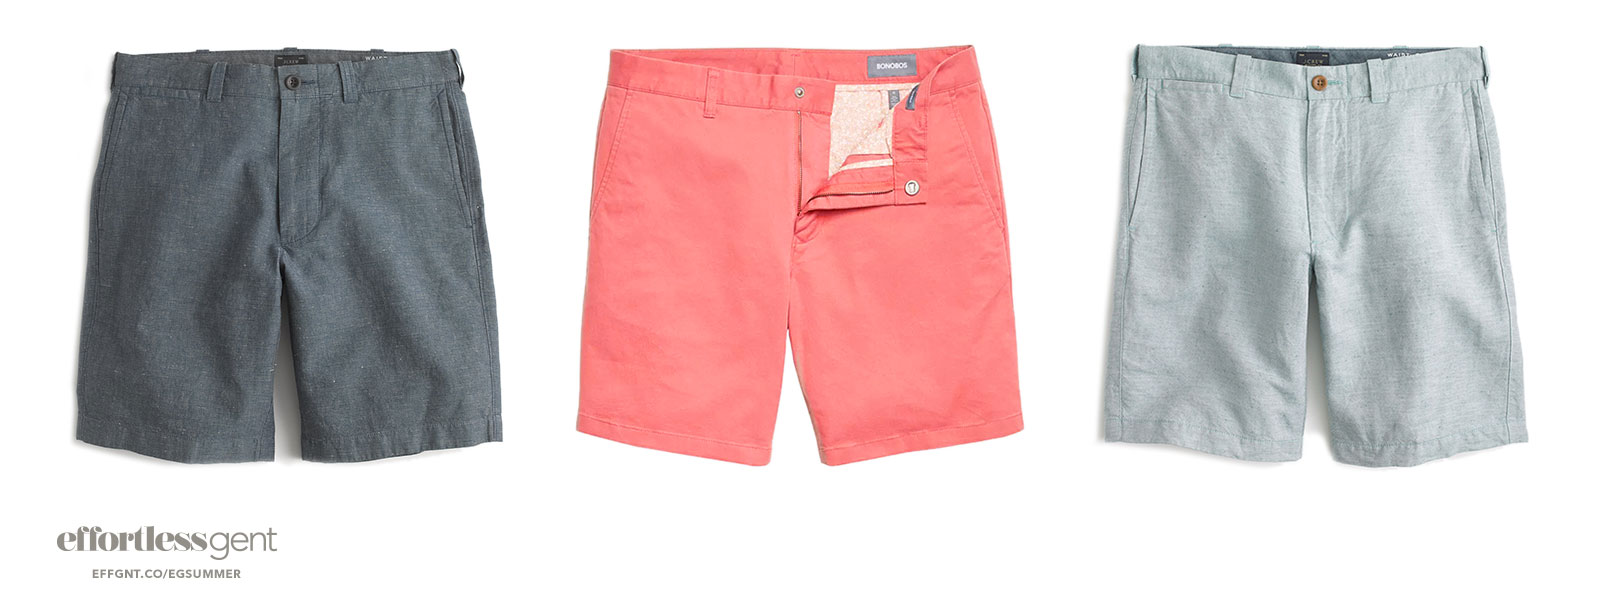 shorts - the best shorts for men